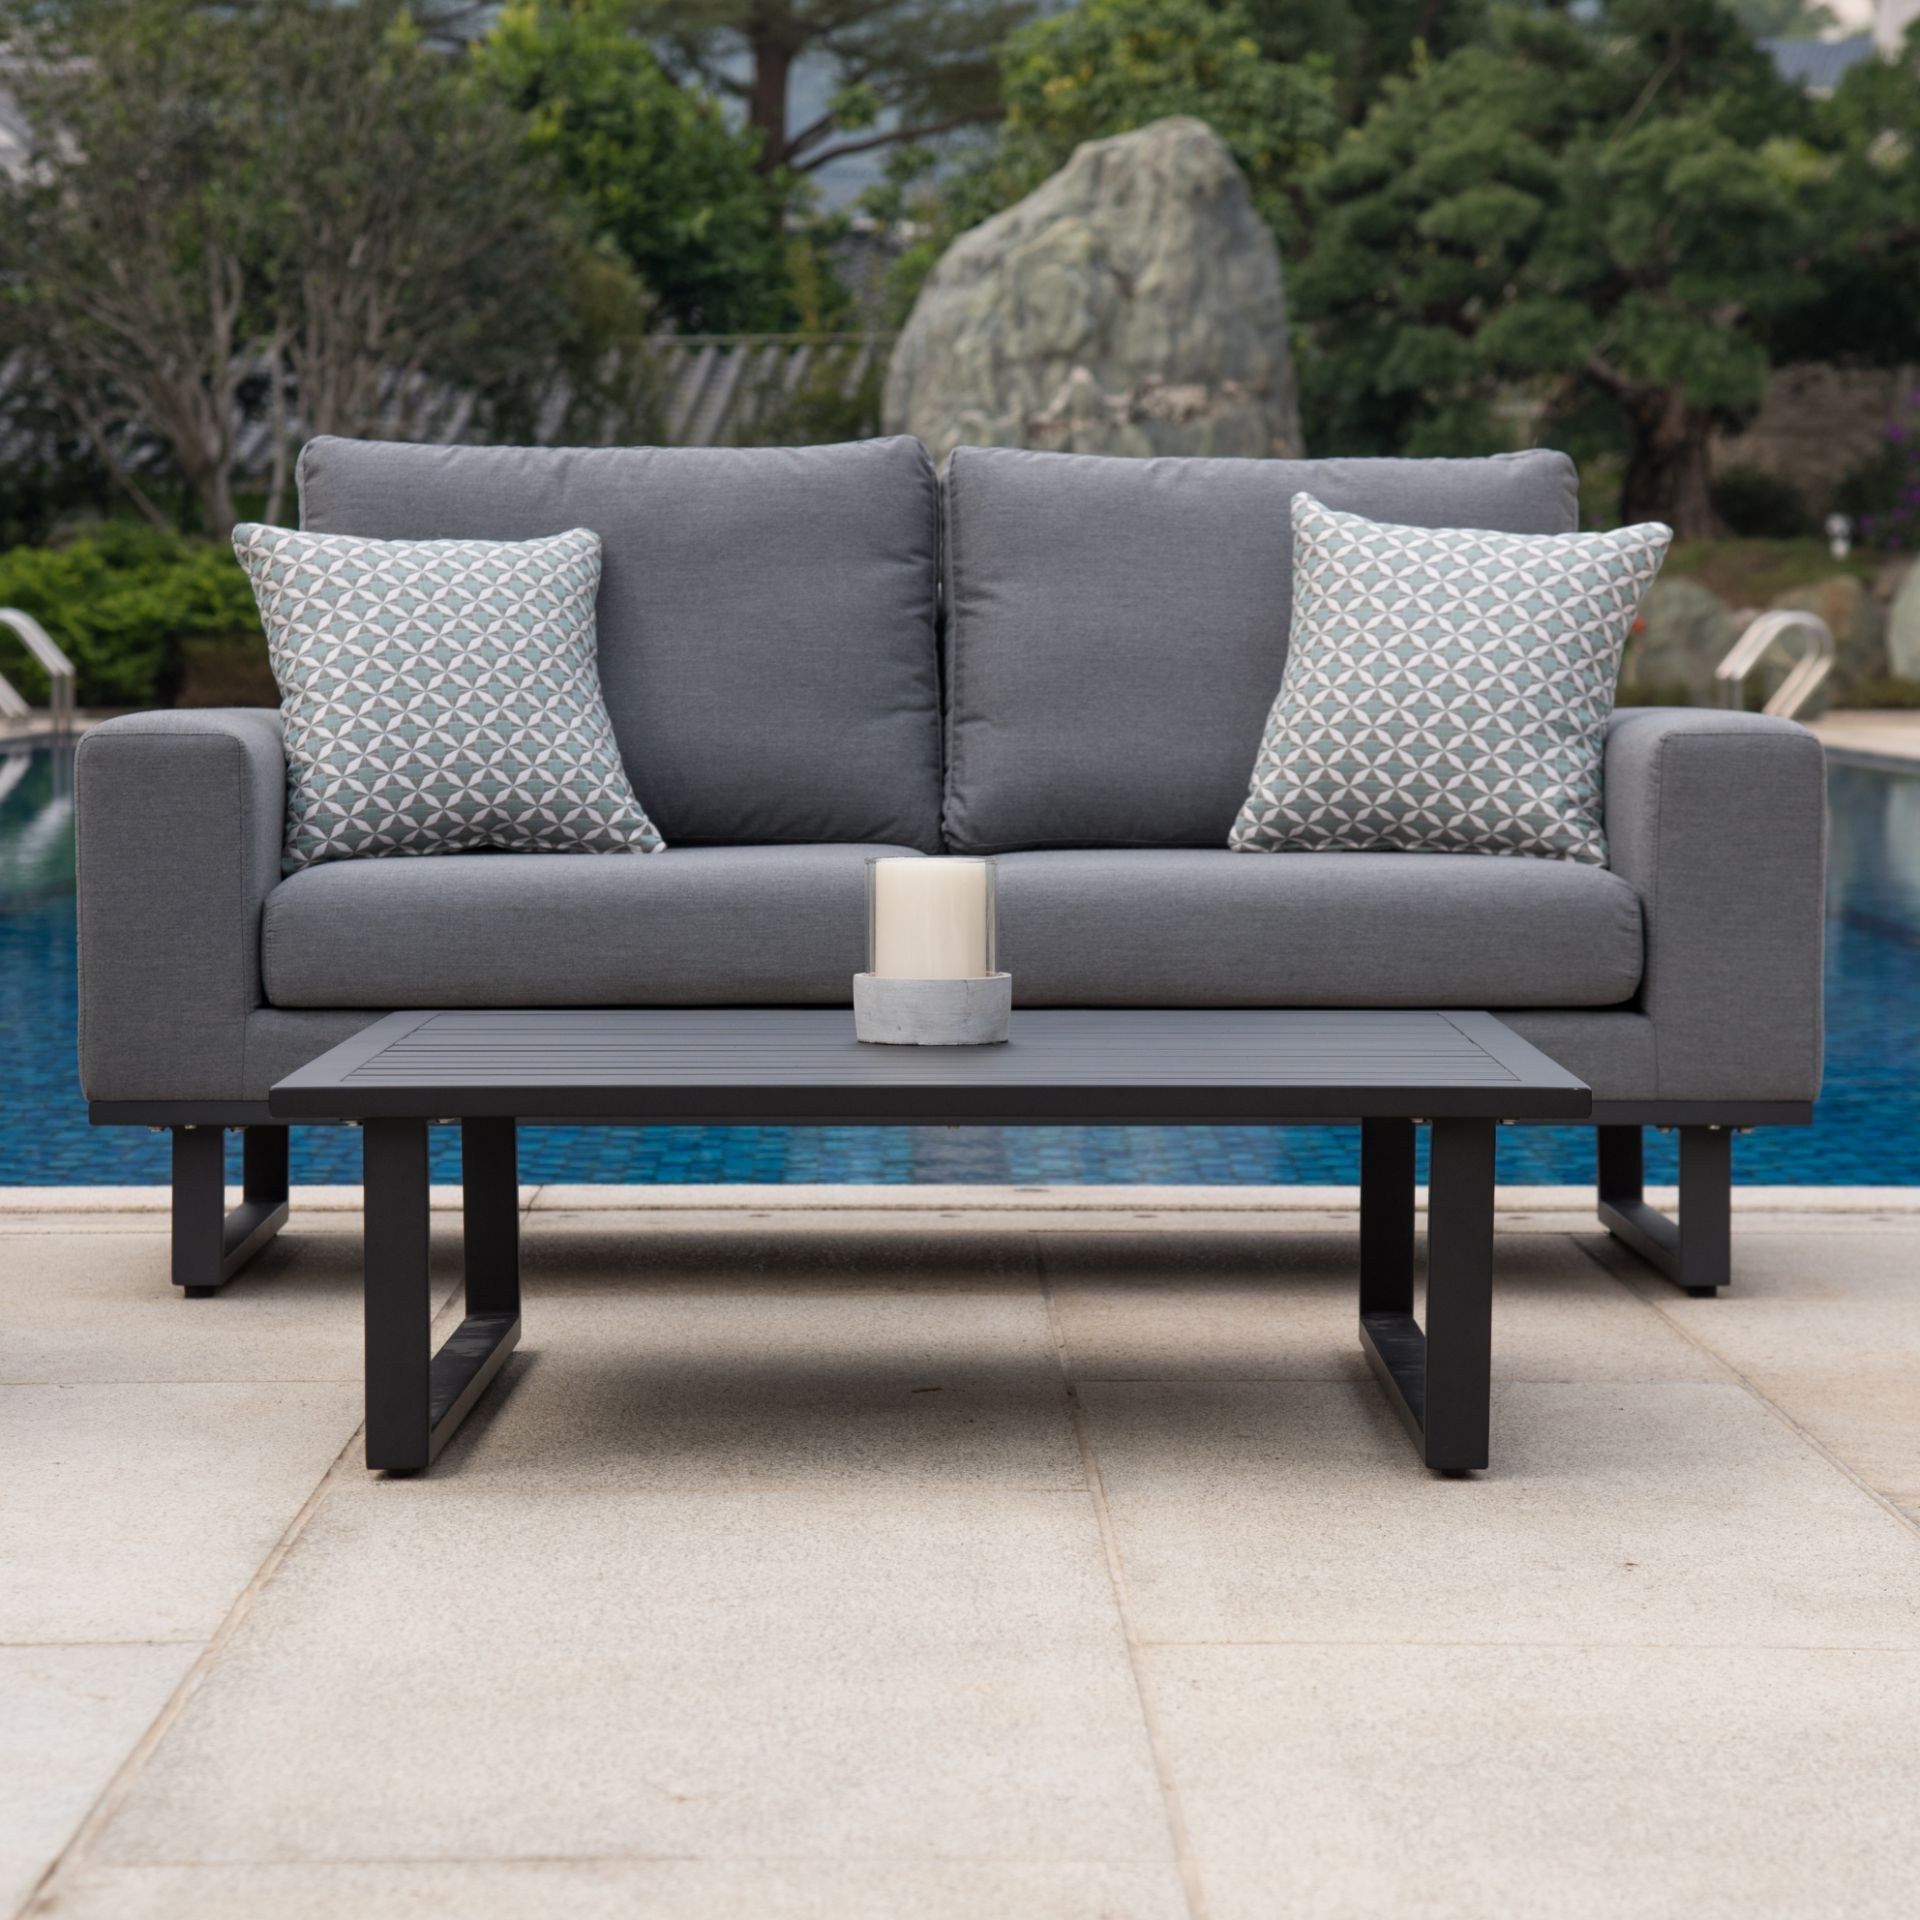 Lot 49 - Ethos Outdoor 2 Seat Sofa Set With Coffee Table (Flanelle) *BRAND NEW*